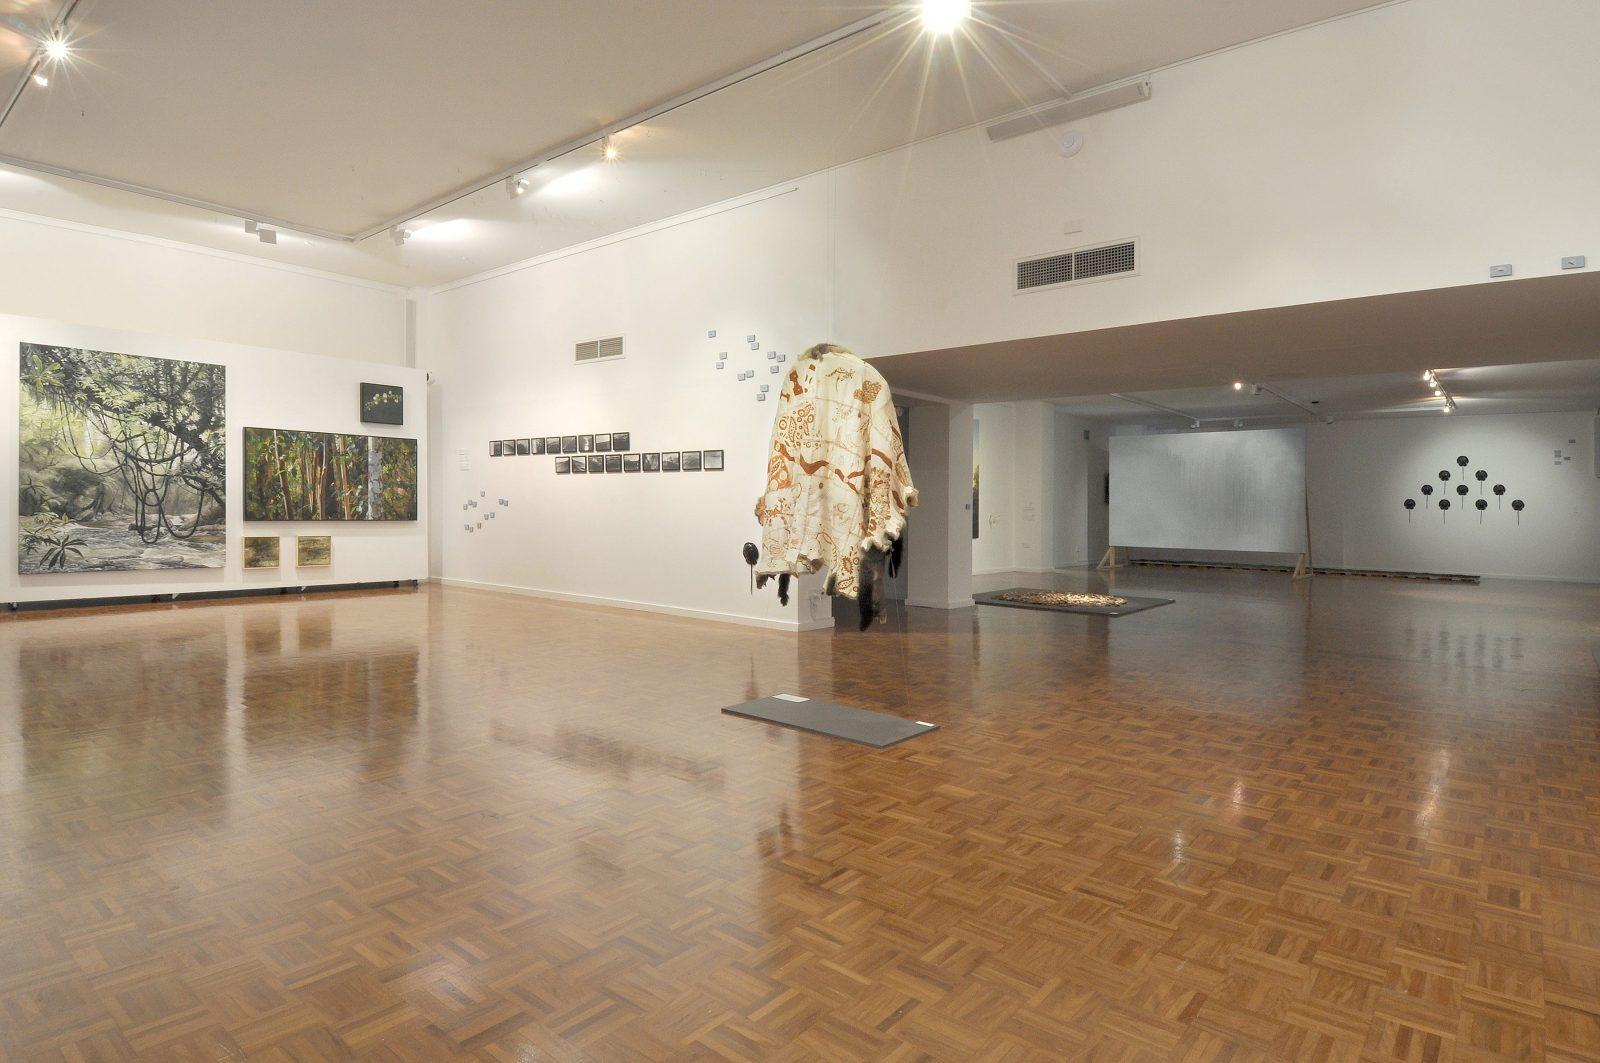 Open gallery space with indigenous animal skin cape hanging from ceiling and forest scene paintings